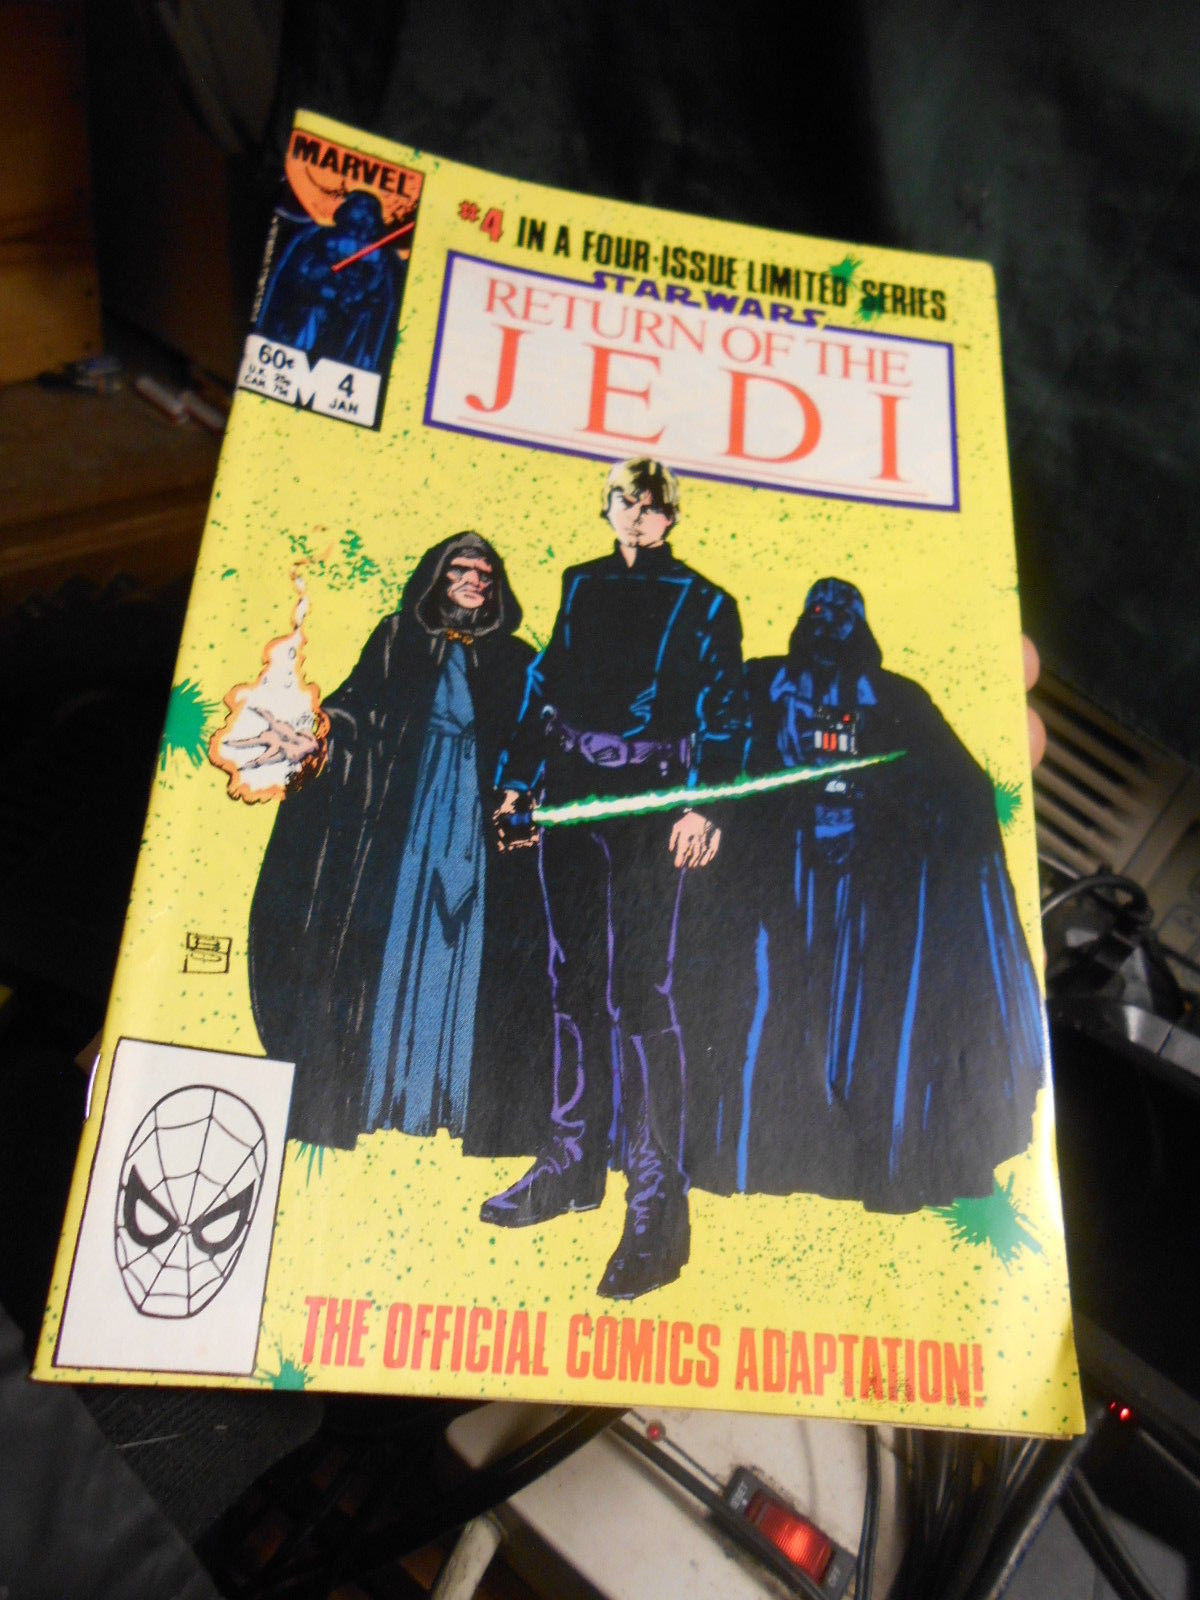 Star Wars RETURN OF THE JEDI #1-4 in sealed  publisher's bag pack High Grade